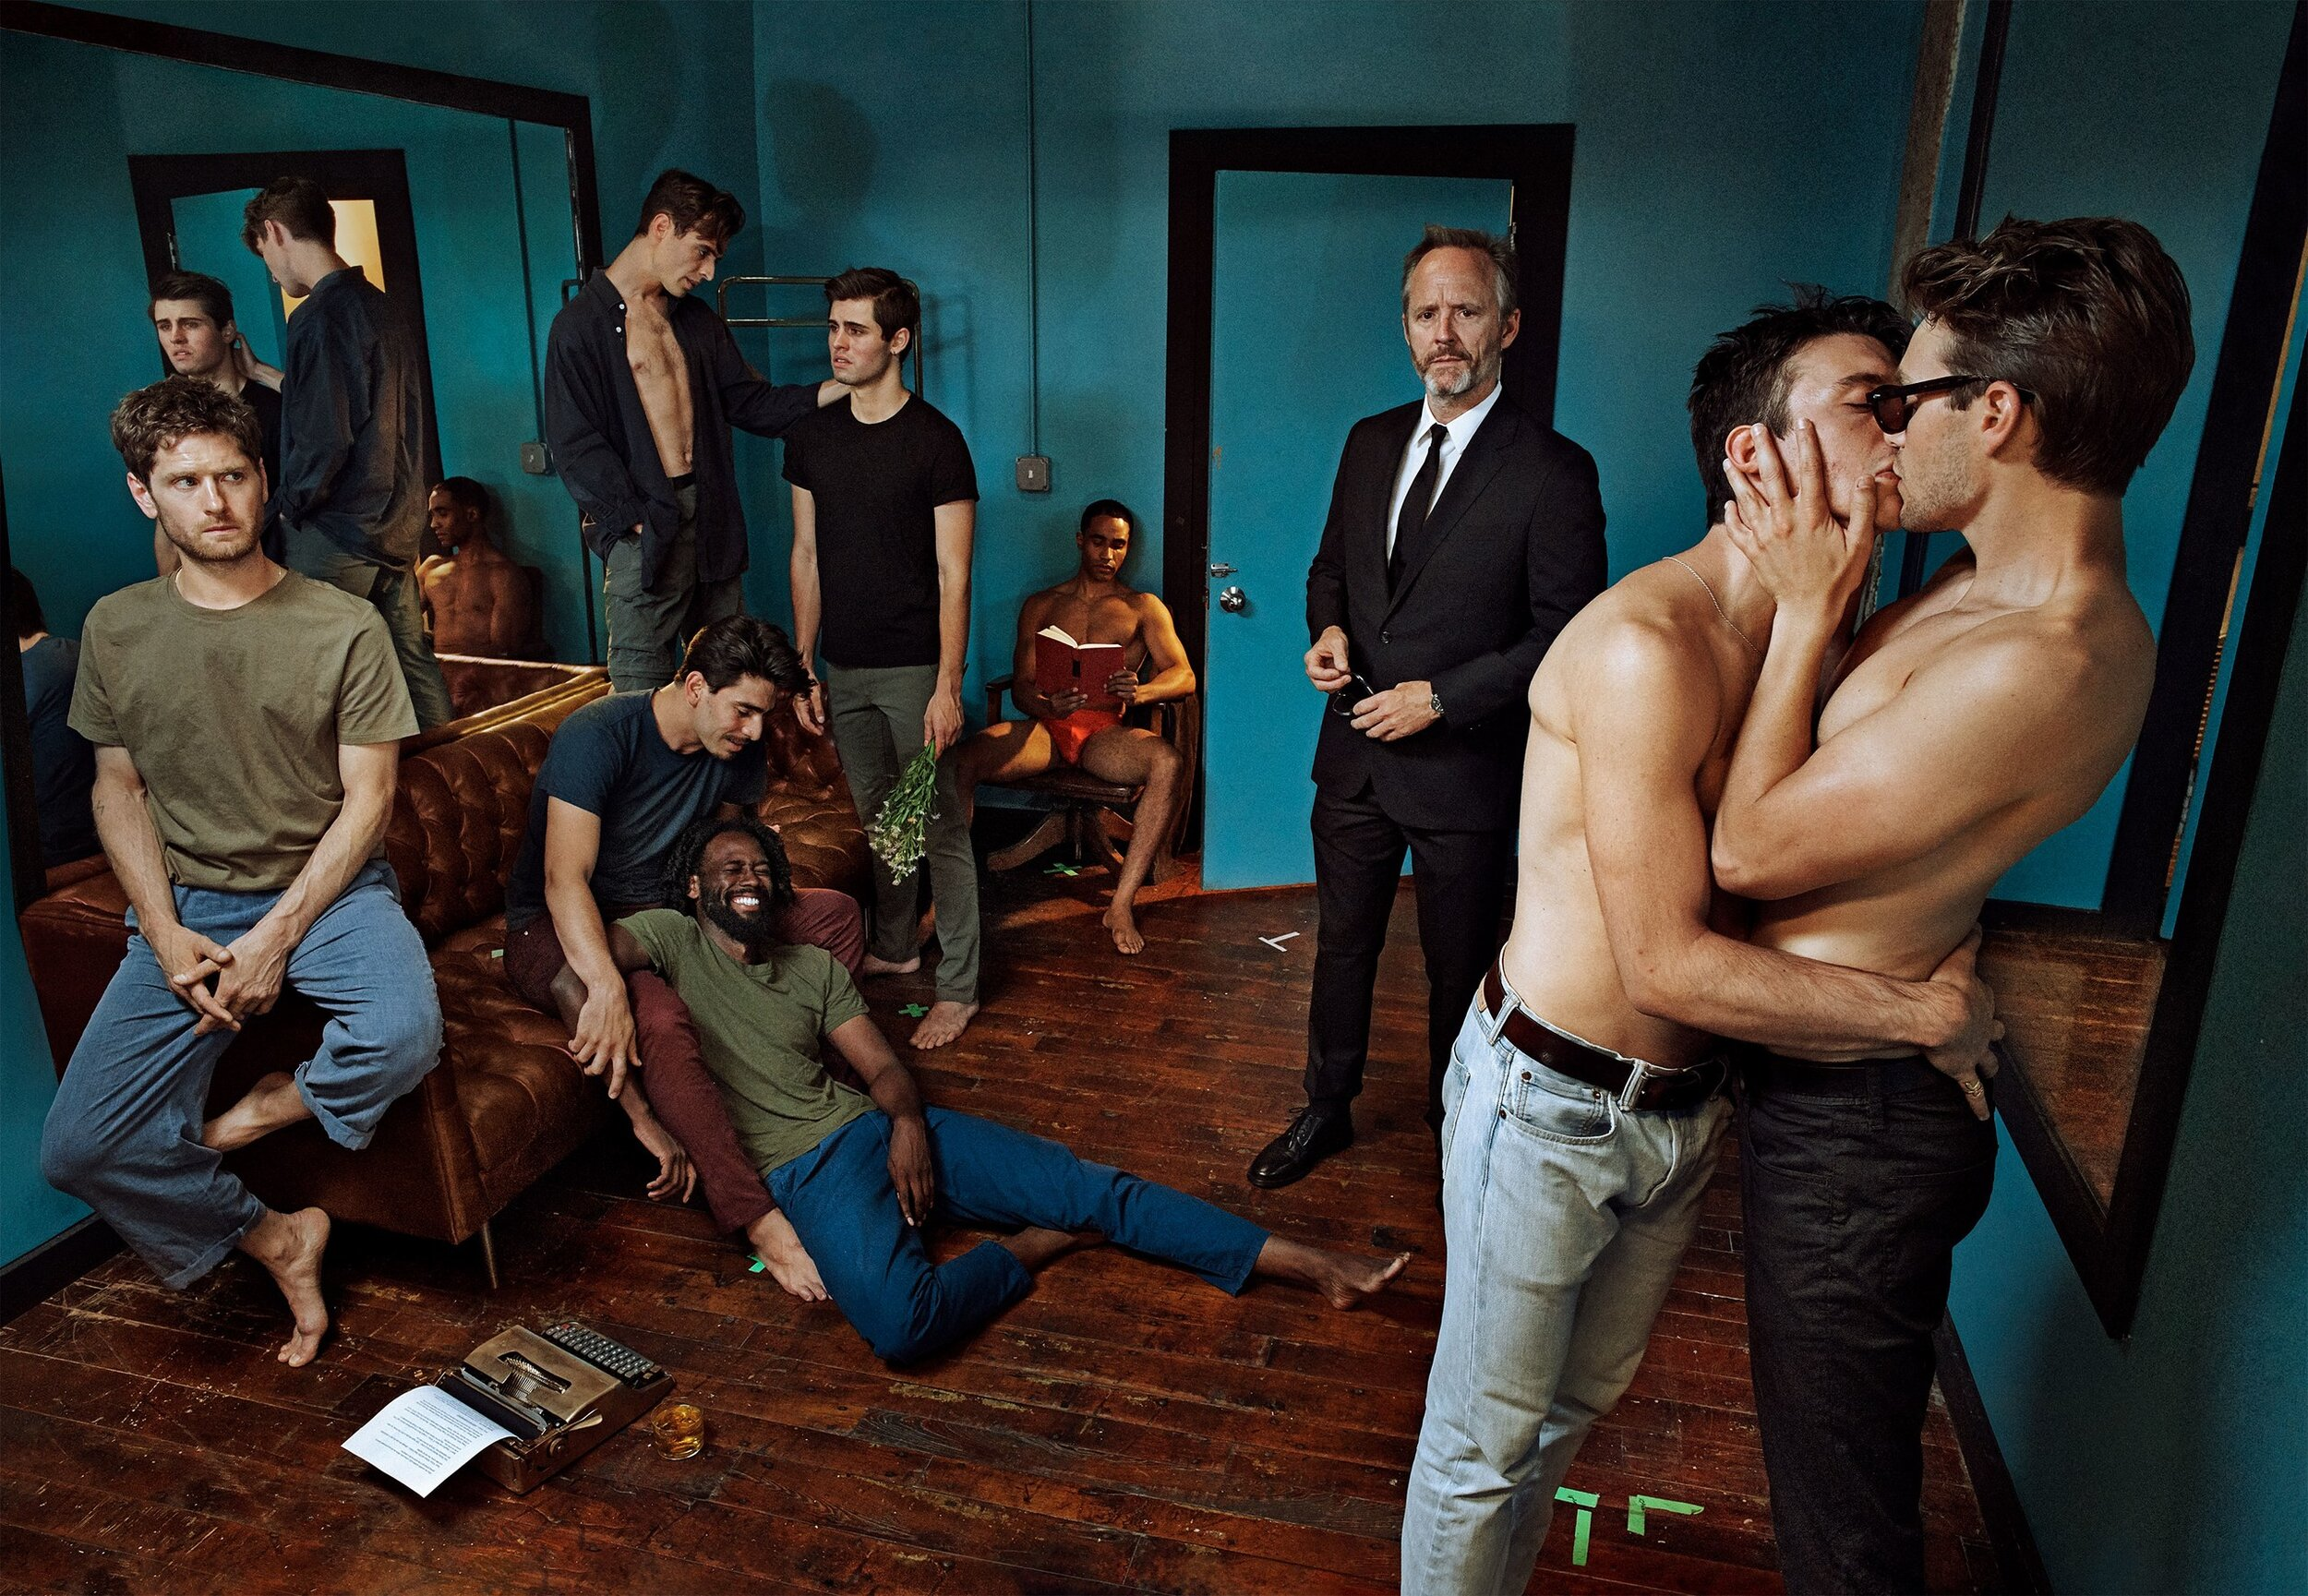 Clockwise from top left: The Broadway cast of The Inheritance includes Dylan Frederick, Carson McCalley, Jonathan Burke (seated, with book), John Benjamin Hickey (standing, in suit), Samuel H. Levine, Andrew Burnap (in sunglasses), Darryl Gene Daughtry Jr. (on floor), Arturo Luís Soria (crouched), and Kyle Soller (seated).  Sittings Editor: Phyllis Posnick. Produced by LOLA Productions. Set design, Jesse Kaufmann. Photographed at Seret Studios.  Photographed by Steven Klein,  Vogue , November 2019